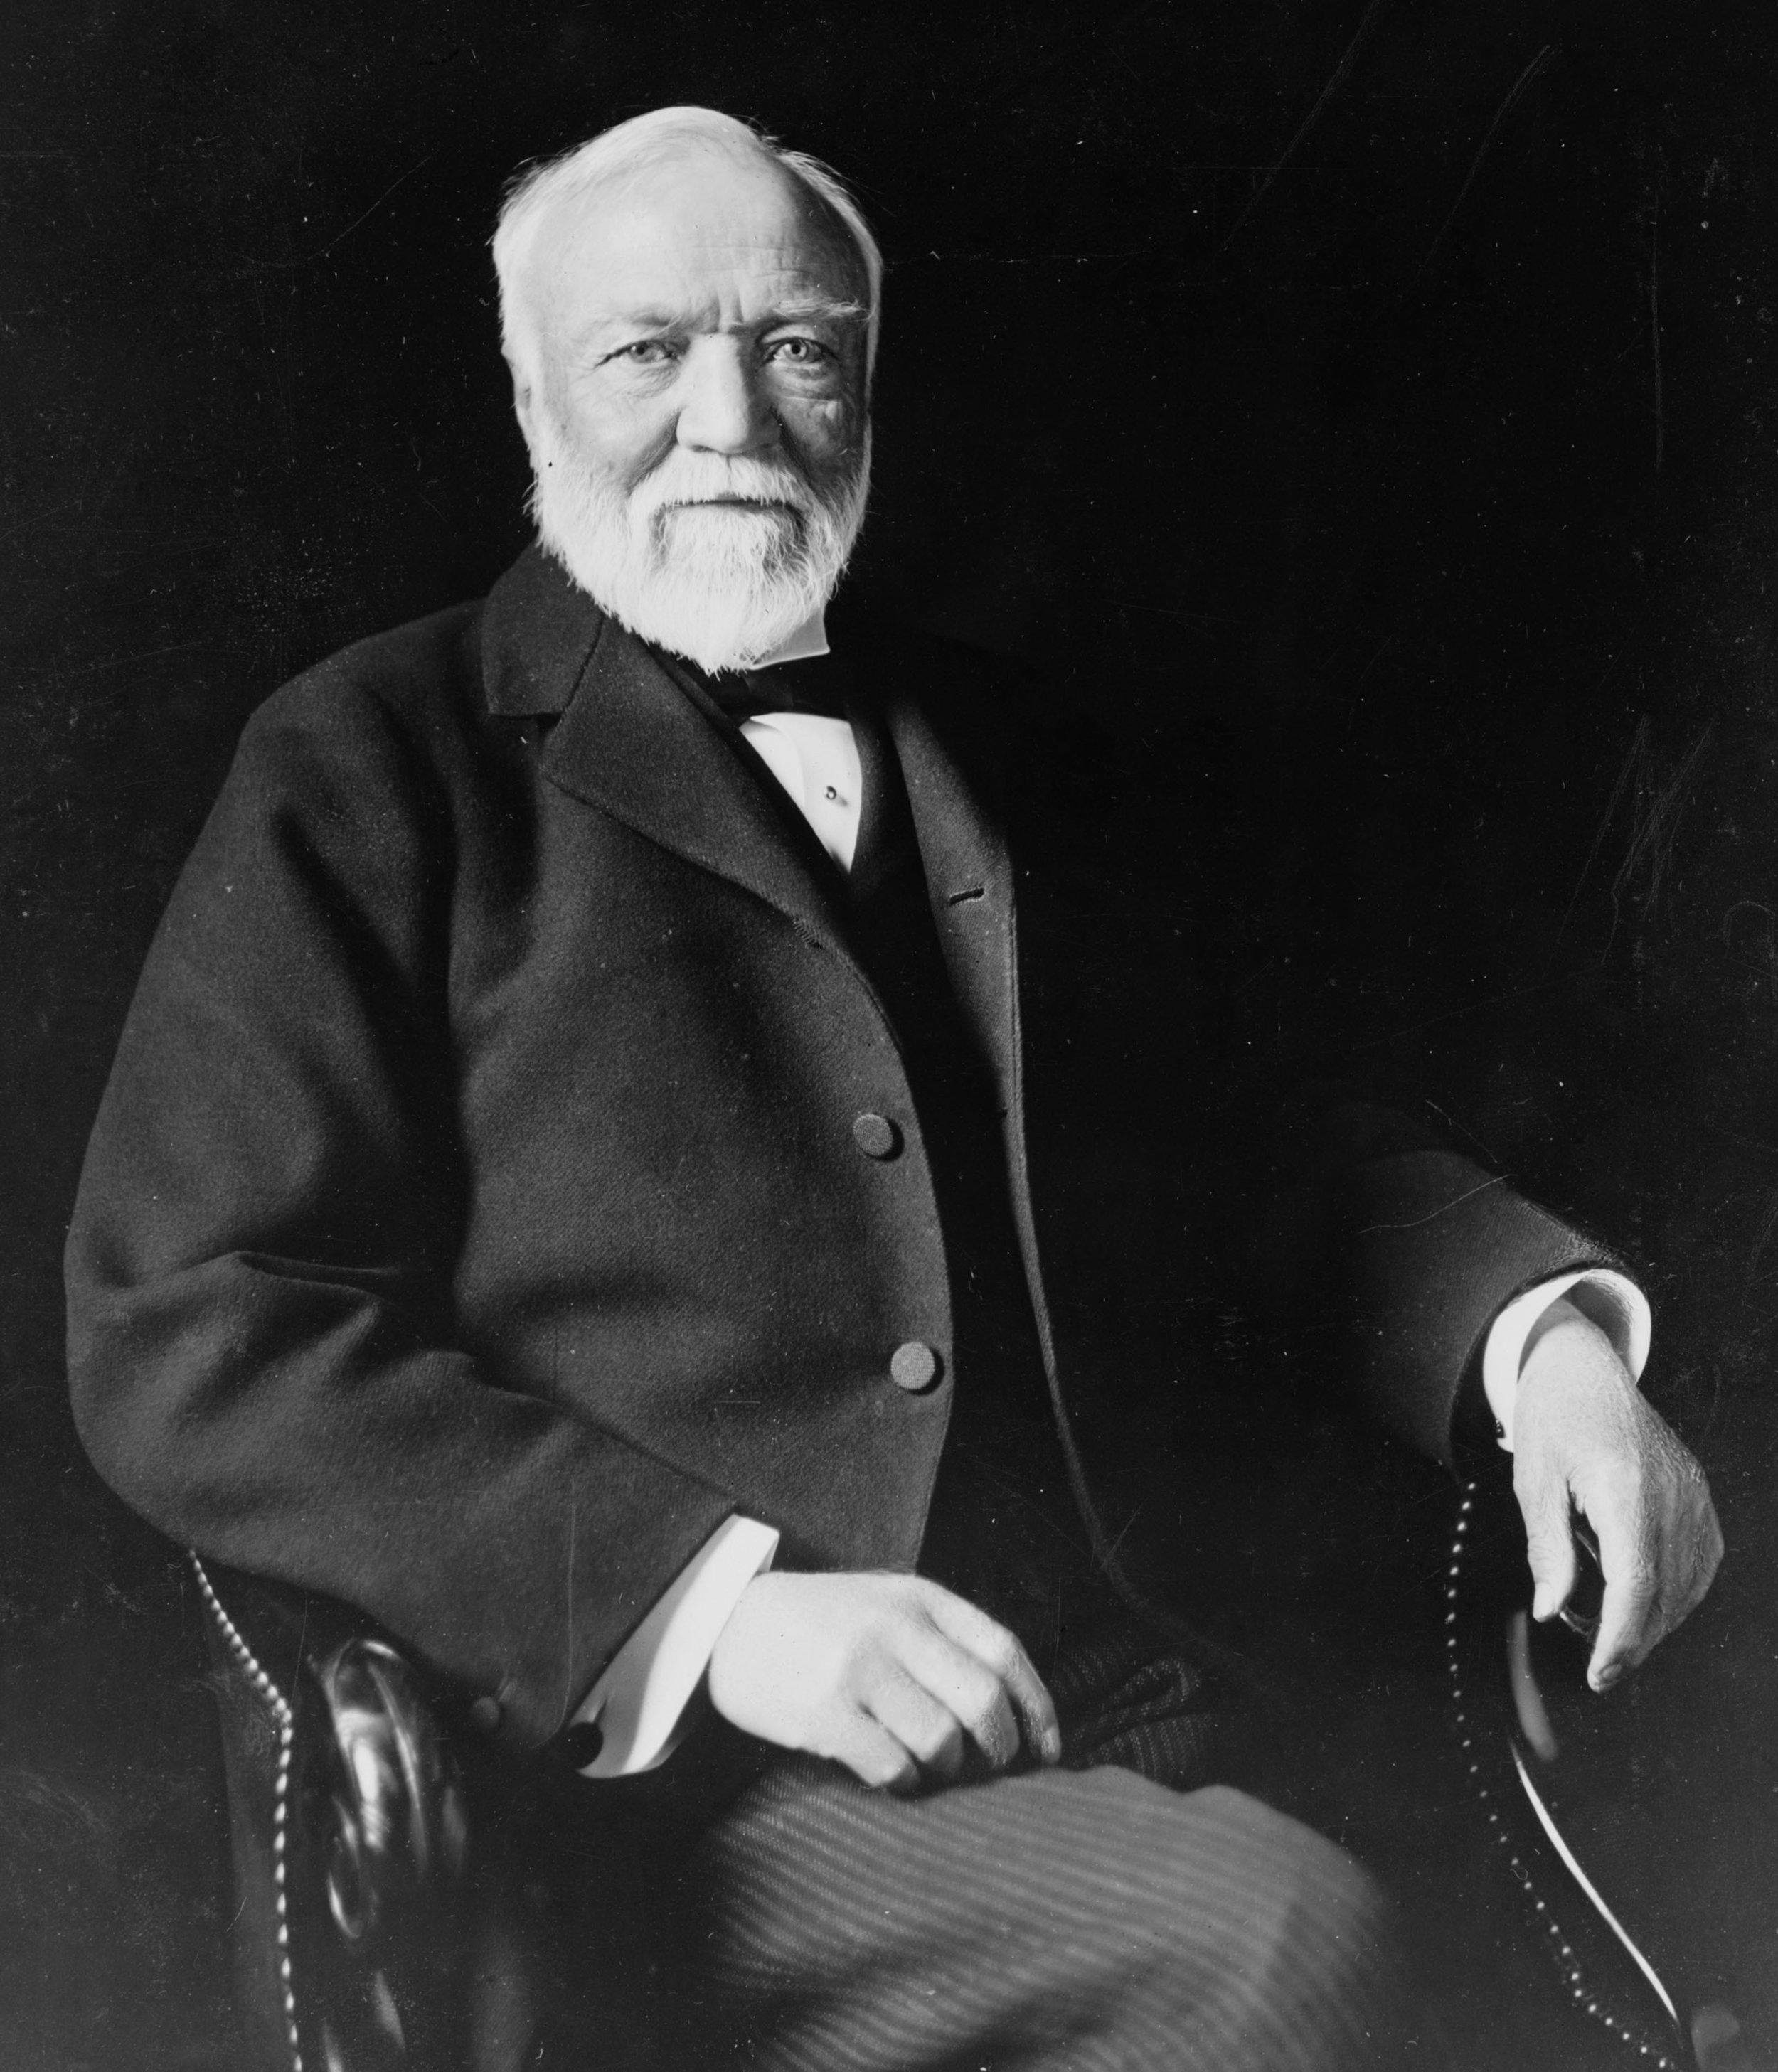 Andrew_Carnegie,_three-quarter_length_portrait,_seated,_facing_slightly_left,_1913.jpg